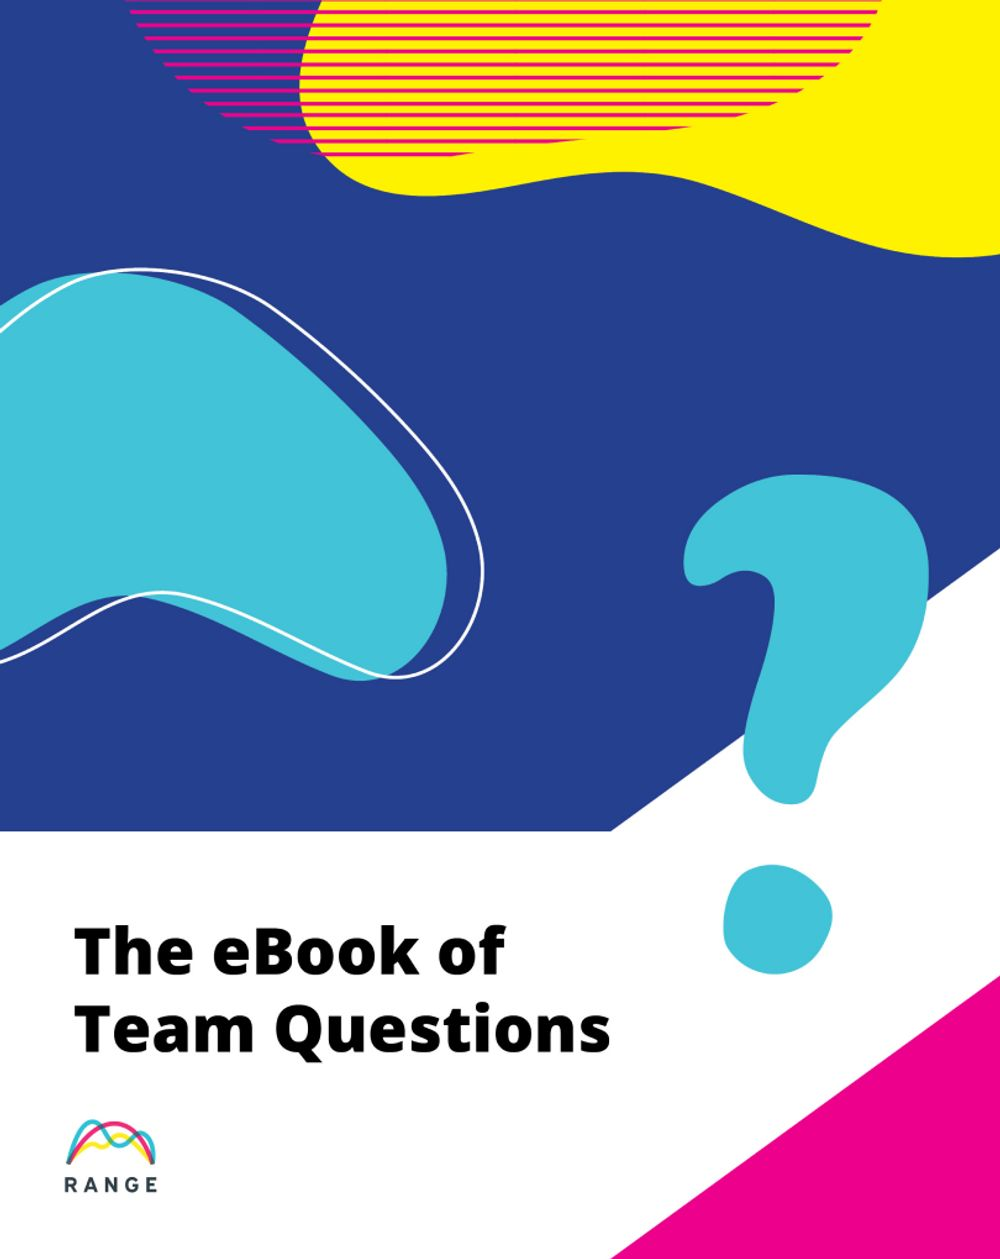 Read our free Team Questions eBook